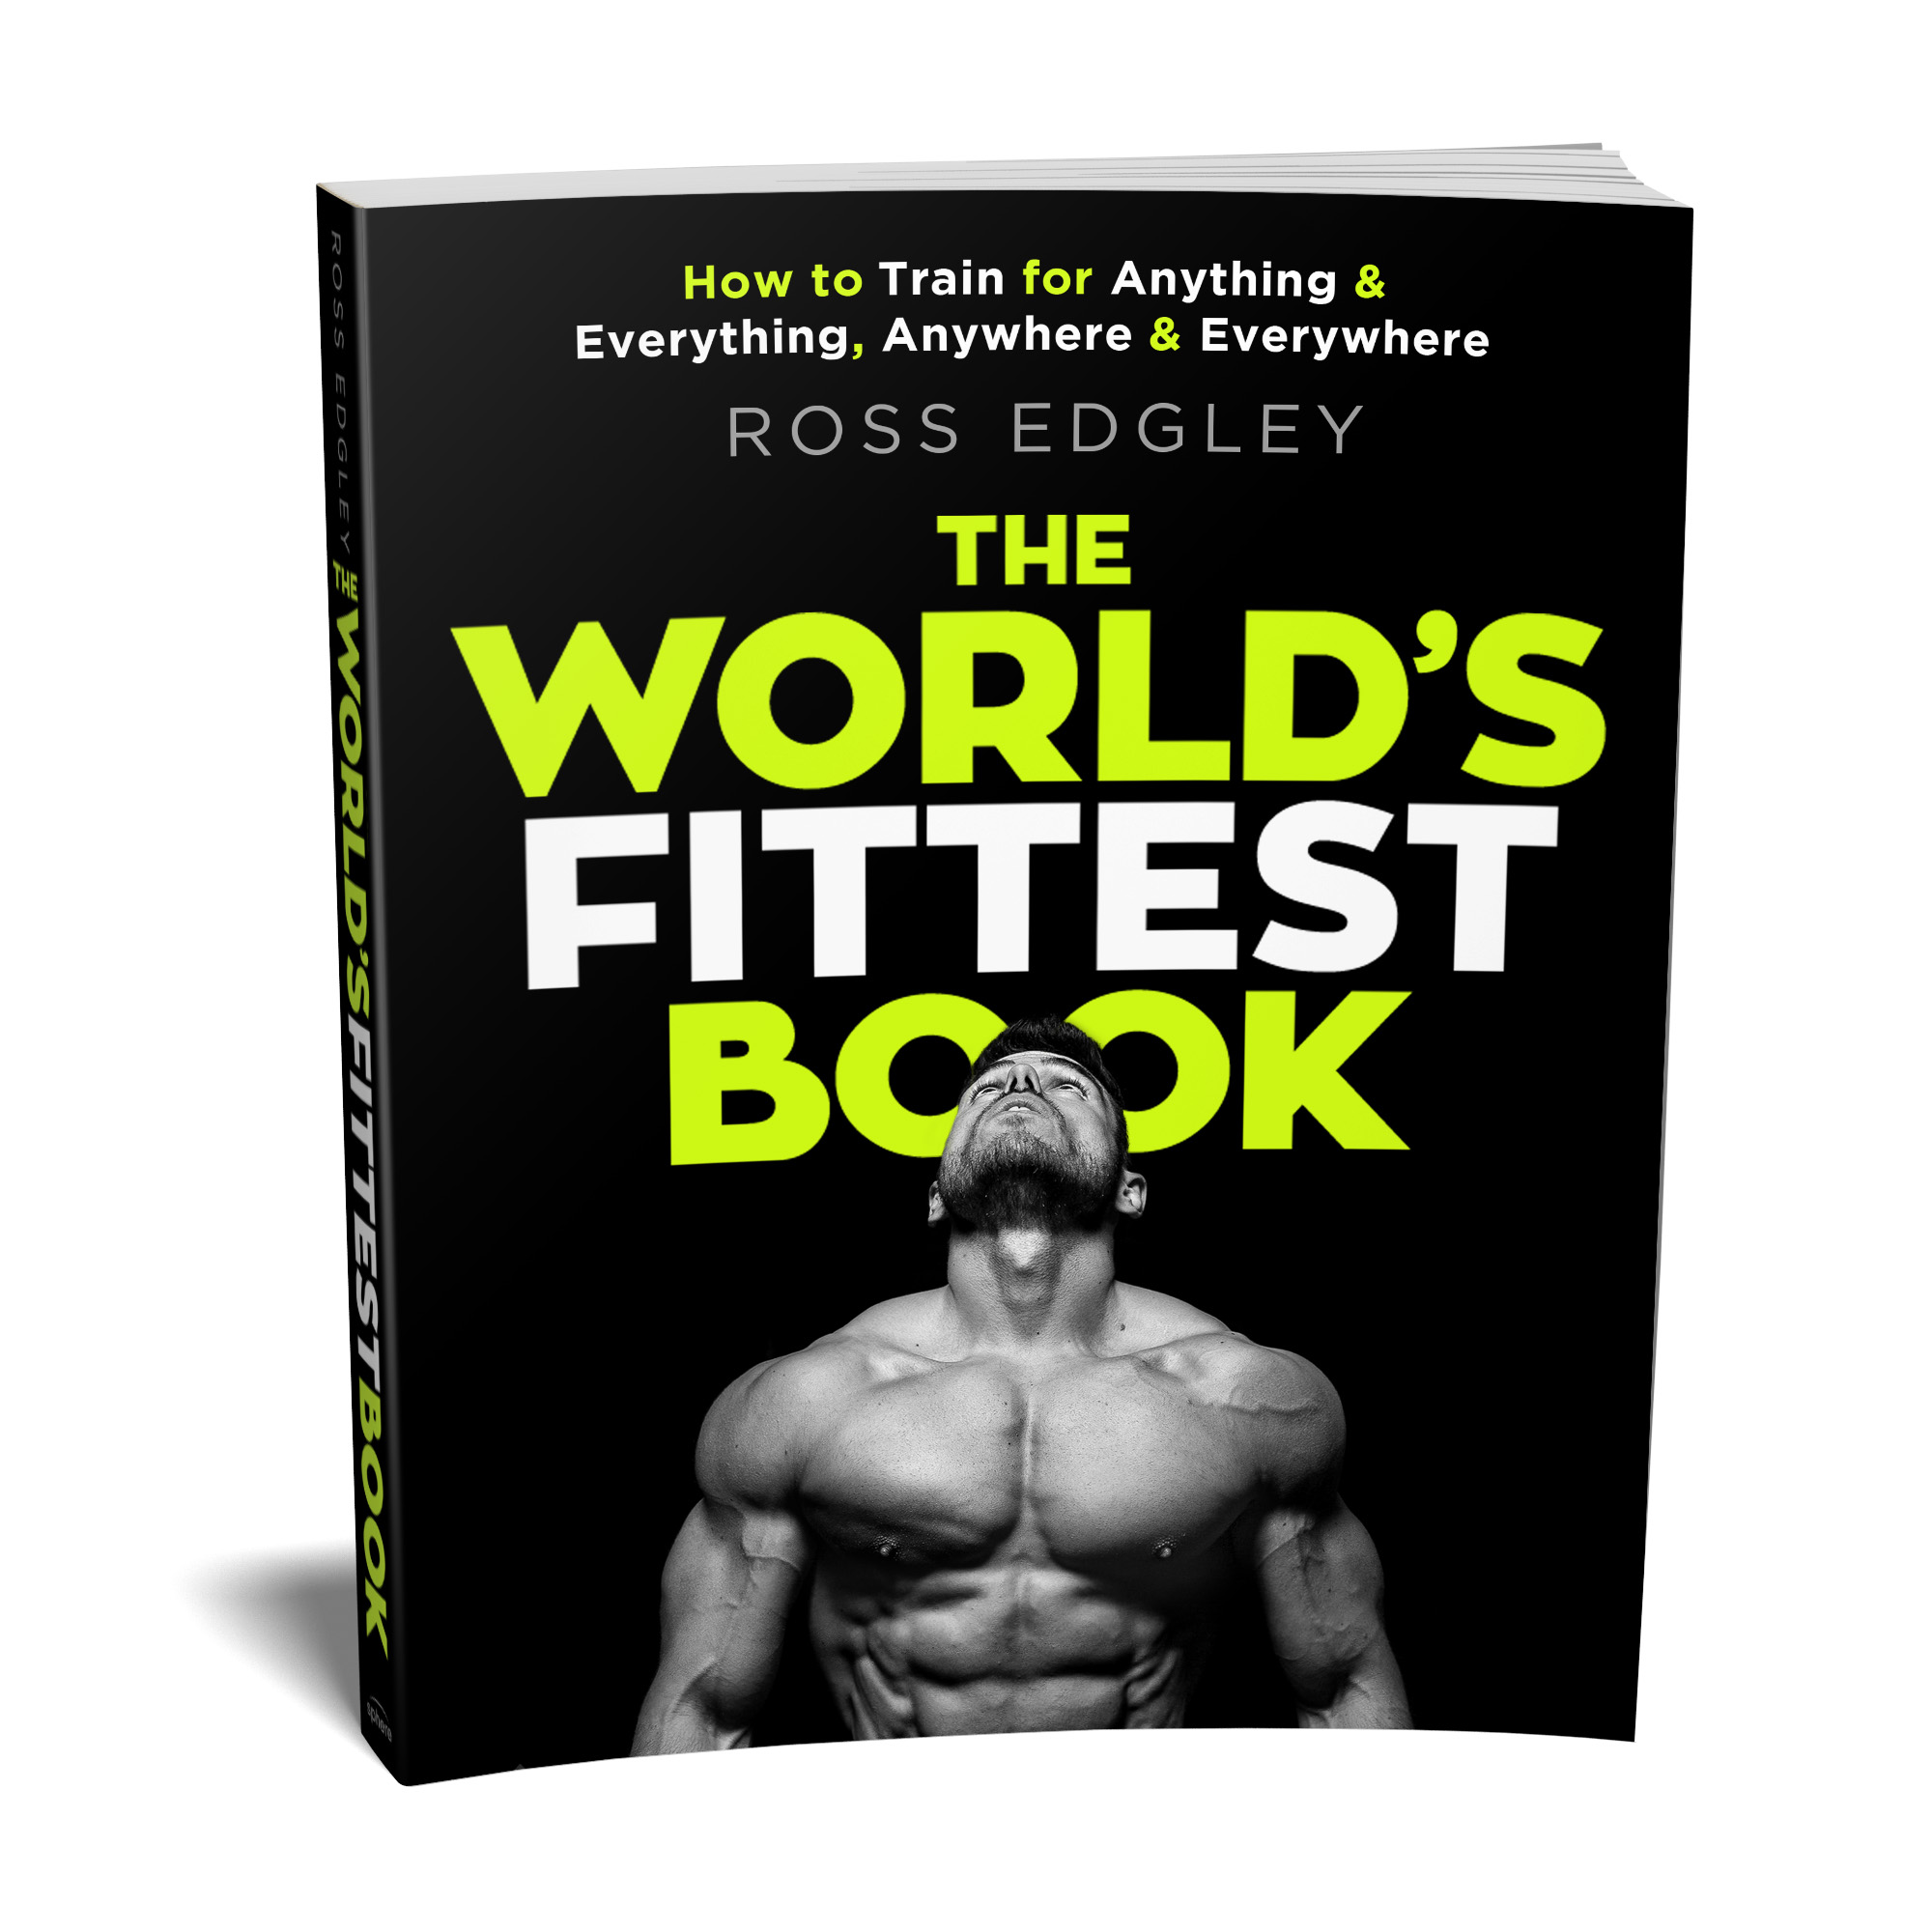 Sign Up For Primal 9: The World's Fastest Transformation Plan